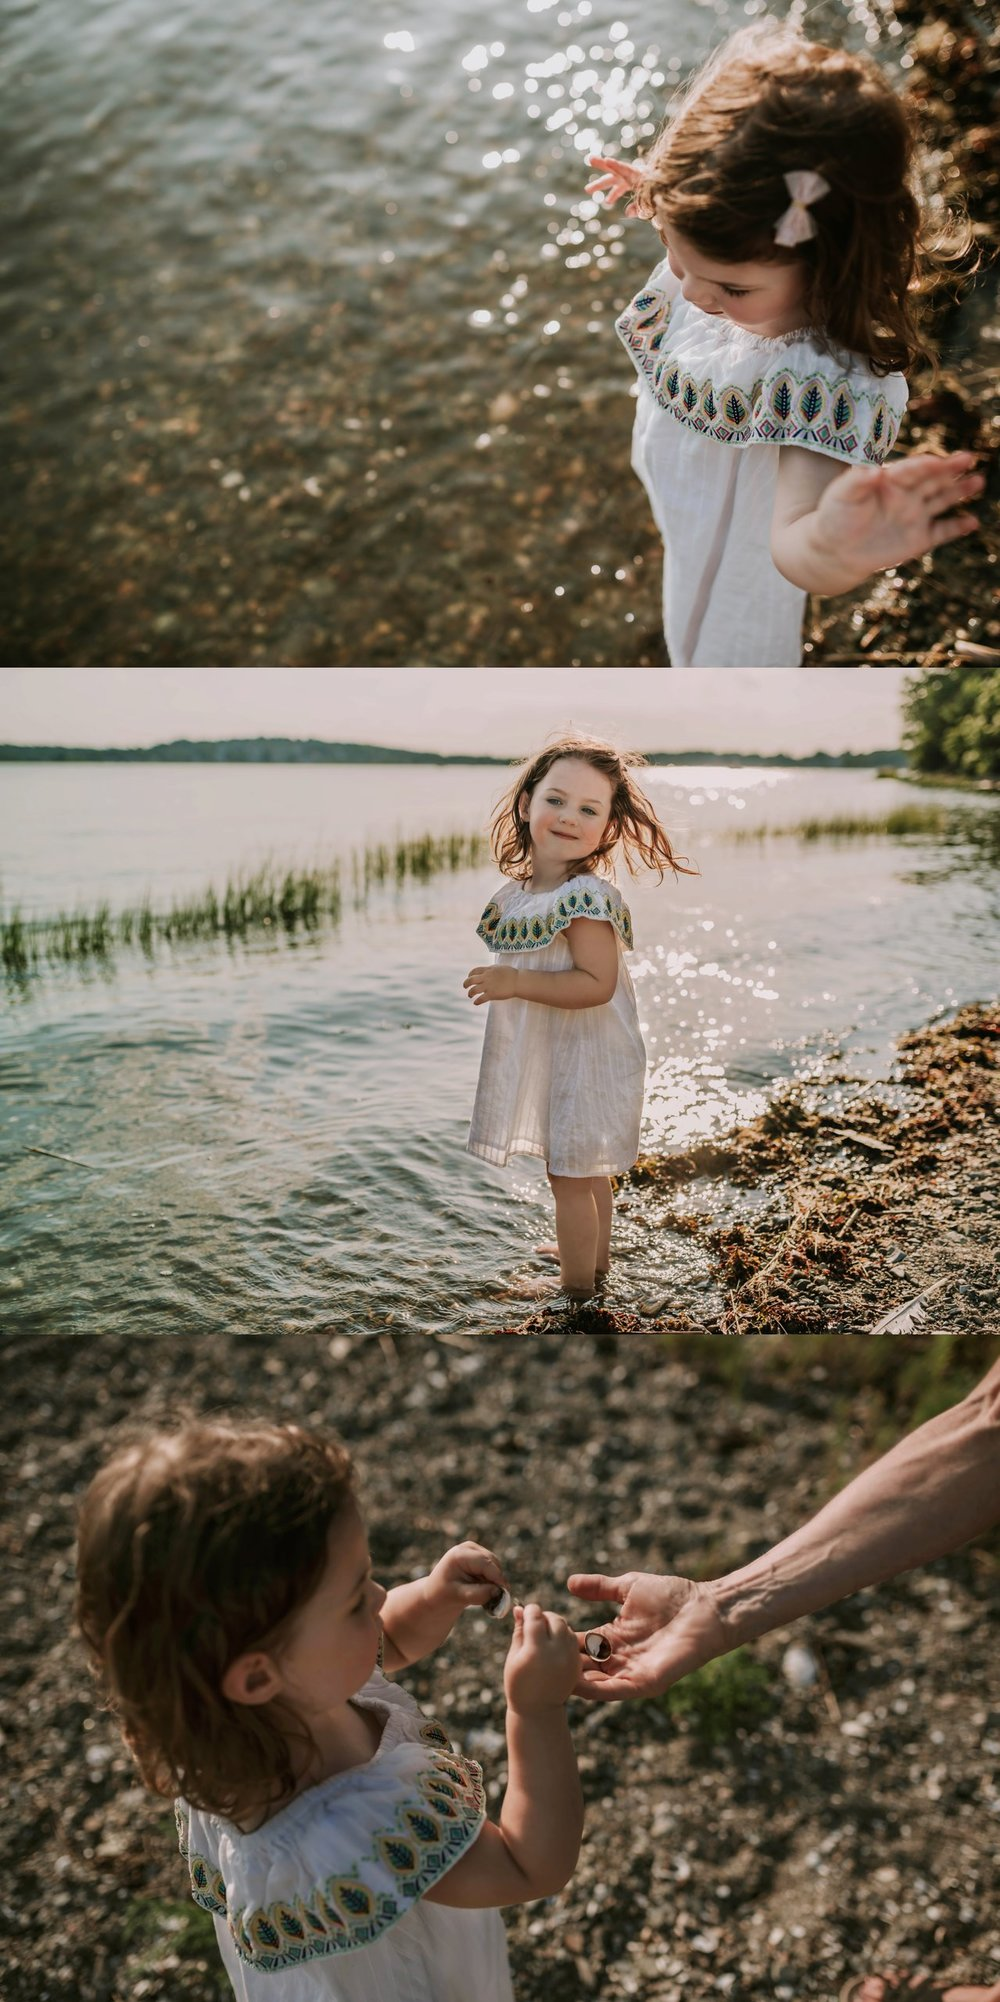 Summers_August_2018-155_Beautiful_Natural_Portraits_by_Award_Winning_Boston_Massachusetts_Family_Portrait_Photographer_Asher_and_Oak_Photography.jpg